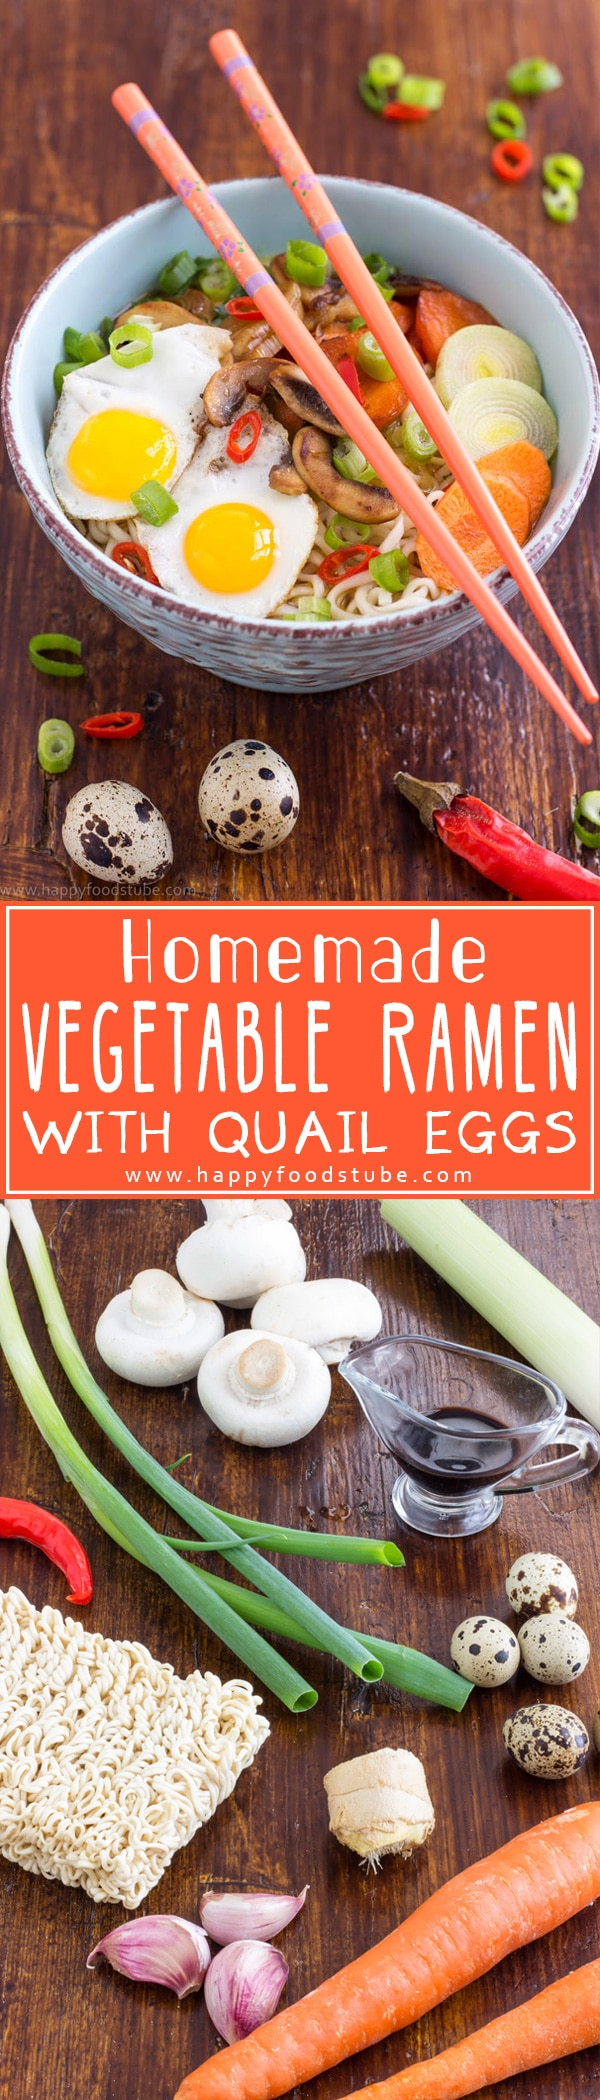 Homemade Vegetable Ramen with Quail Eggs is a perfect dish for winter. Delicious noodles in spicy broth, topped with stir-fried vegetables & fried quail eggs. Easy vegetarian recipe. How to make a ramen